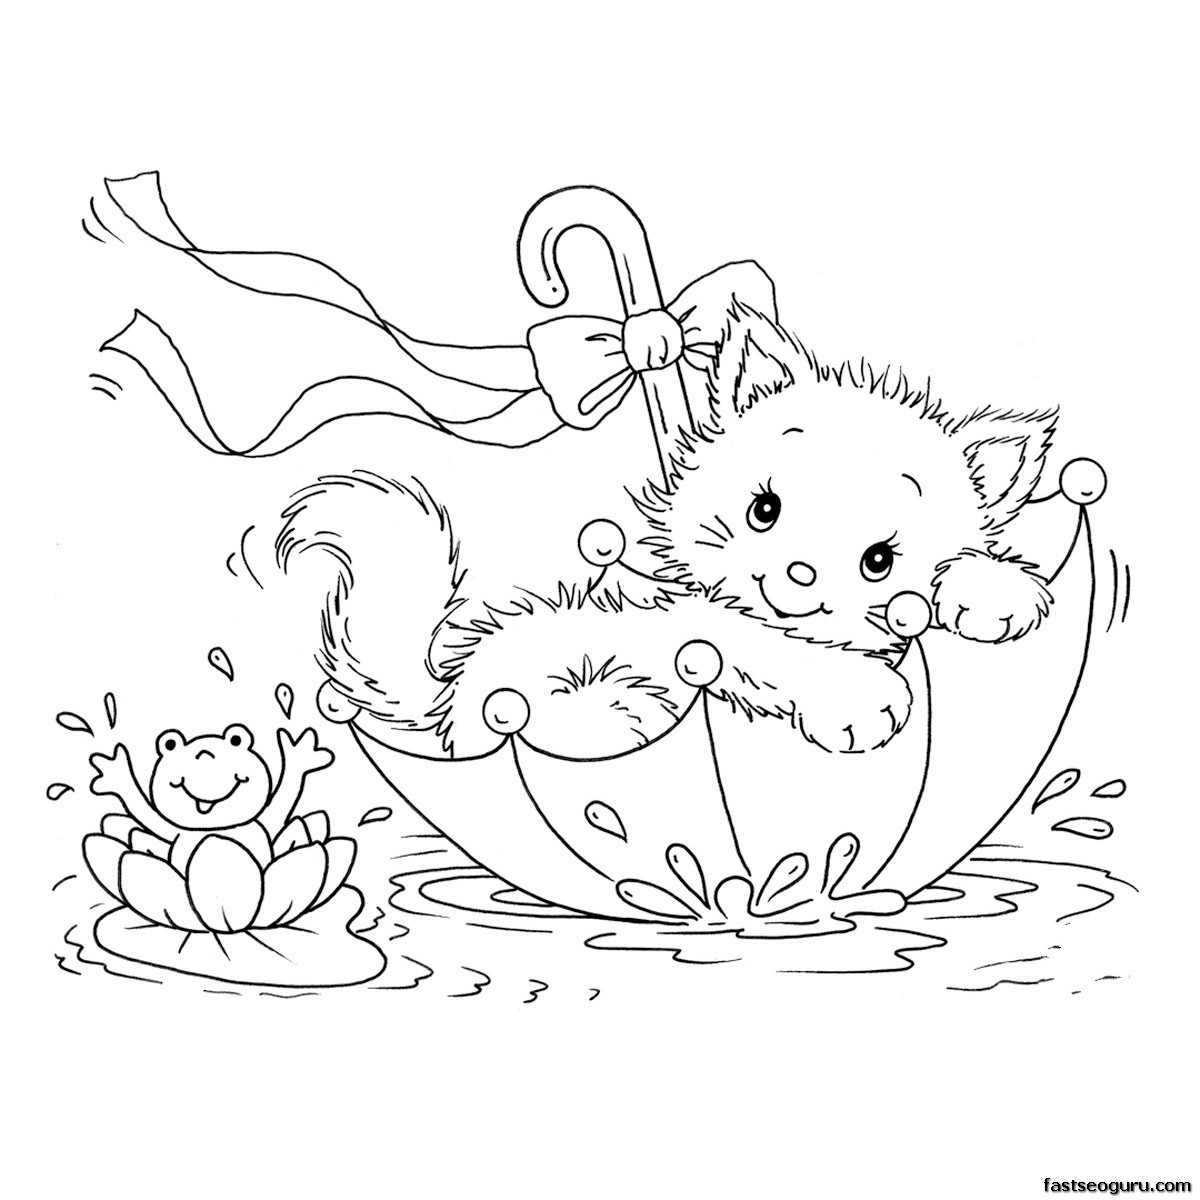 1200x1200 Kitten Printable Coloring Pages Kitten Coloring Pages Walloid Dog